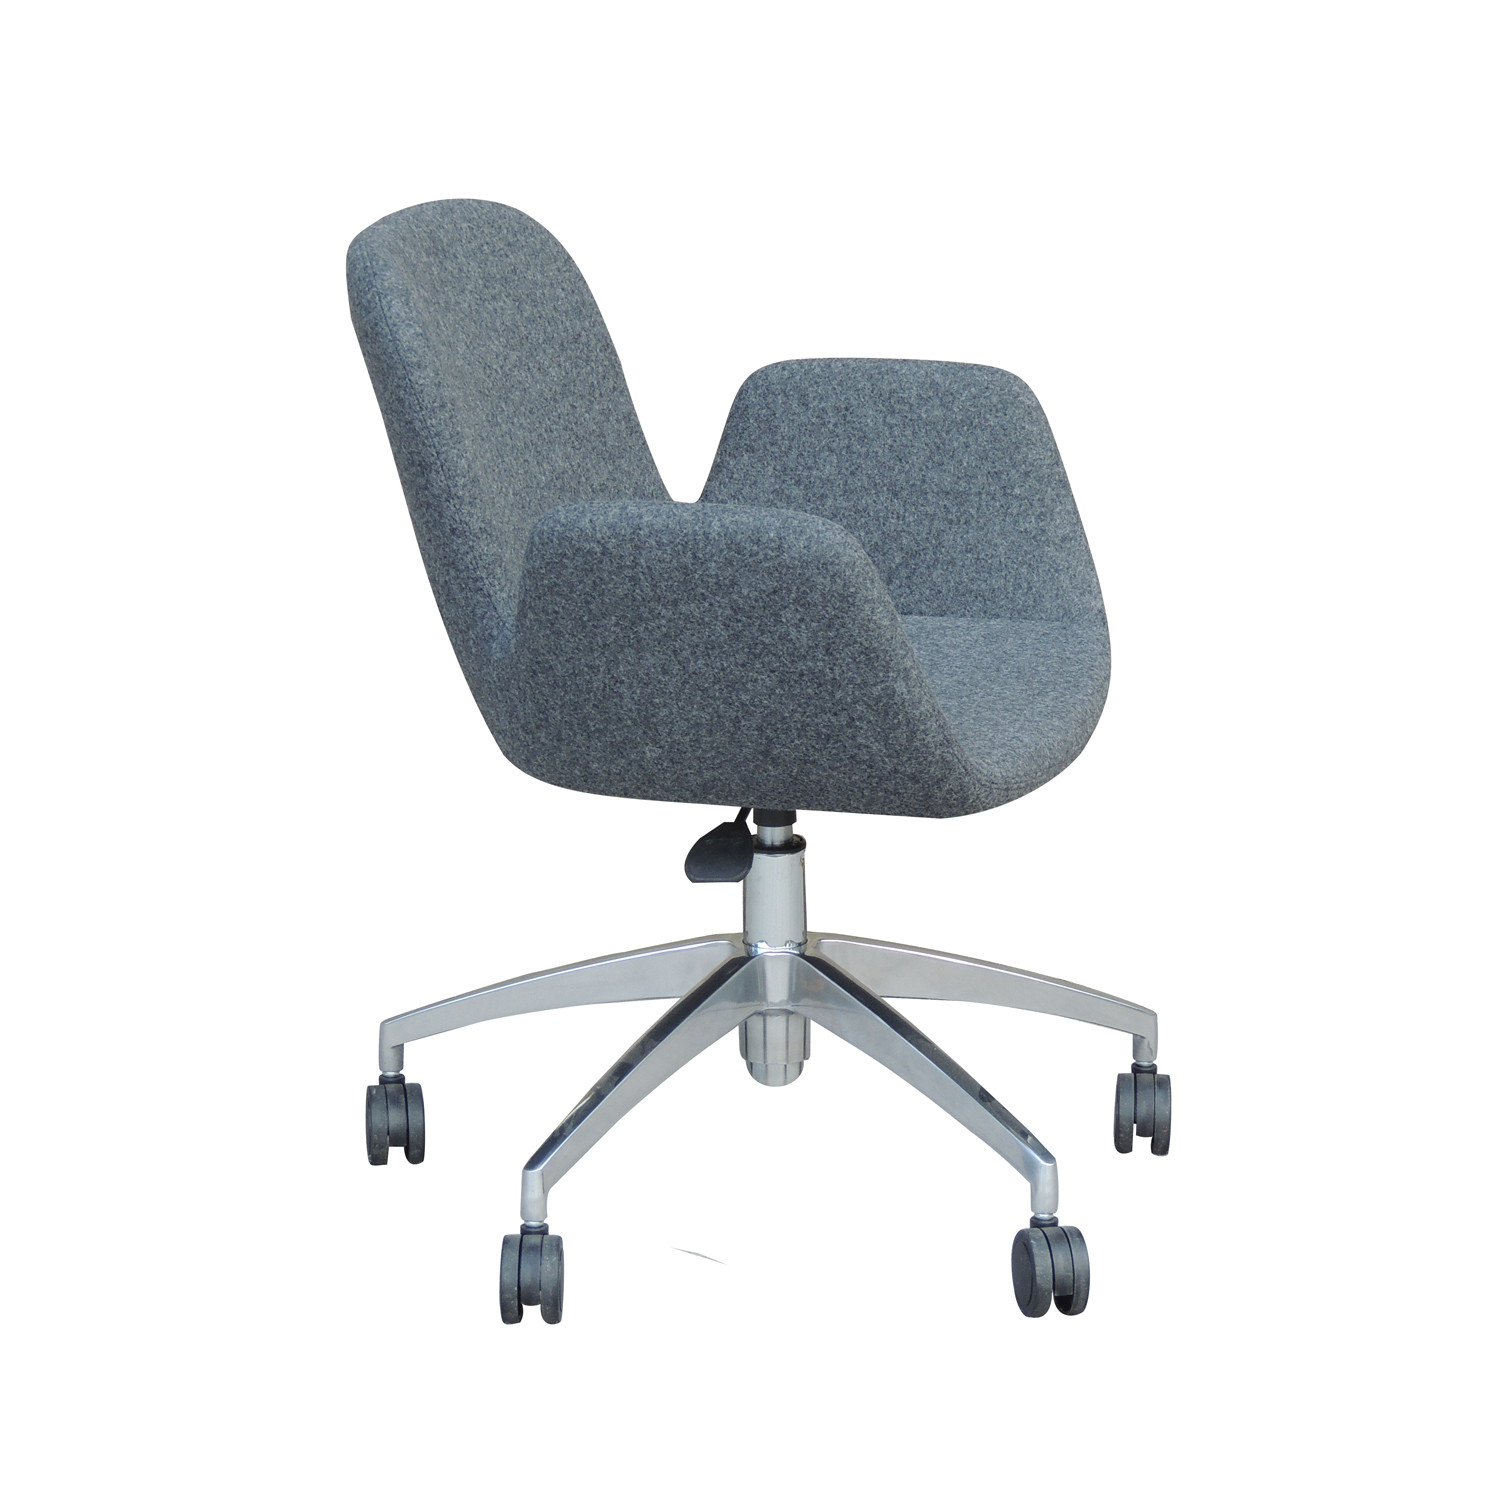 com flynn hard grey persian again office from made working pin chair